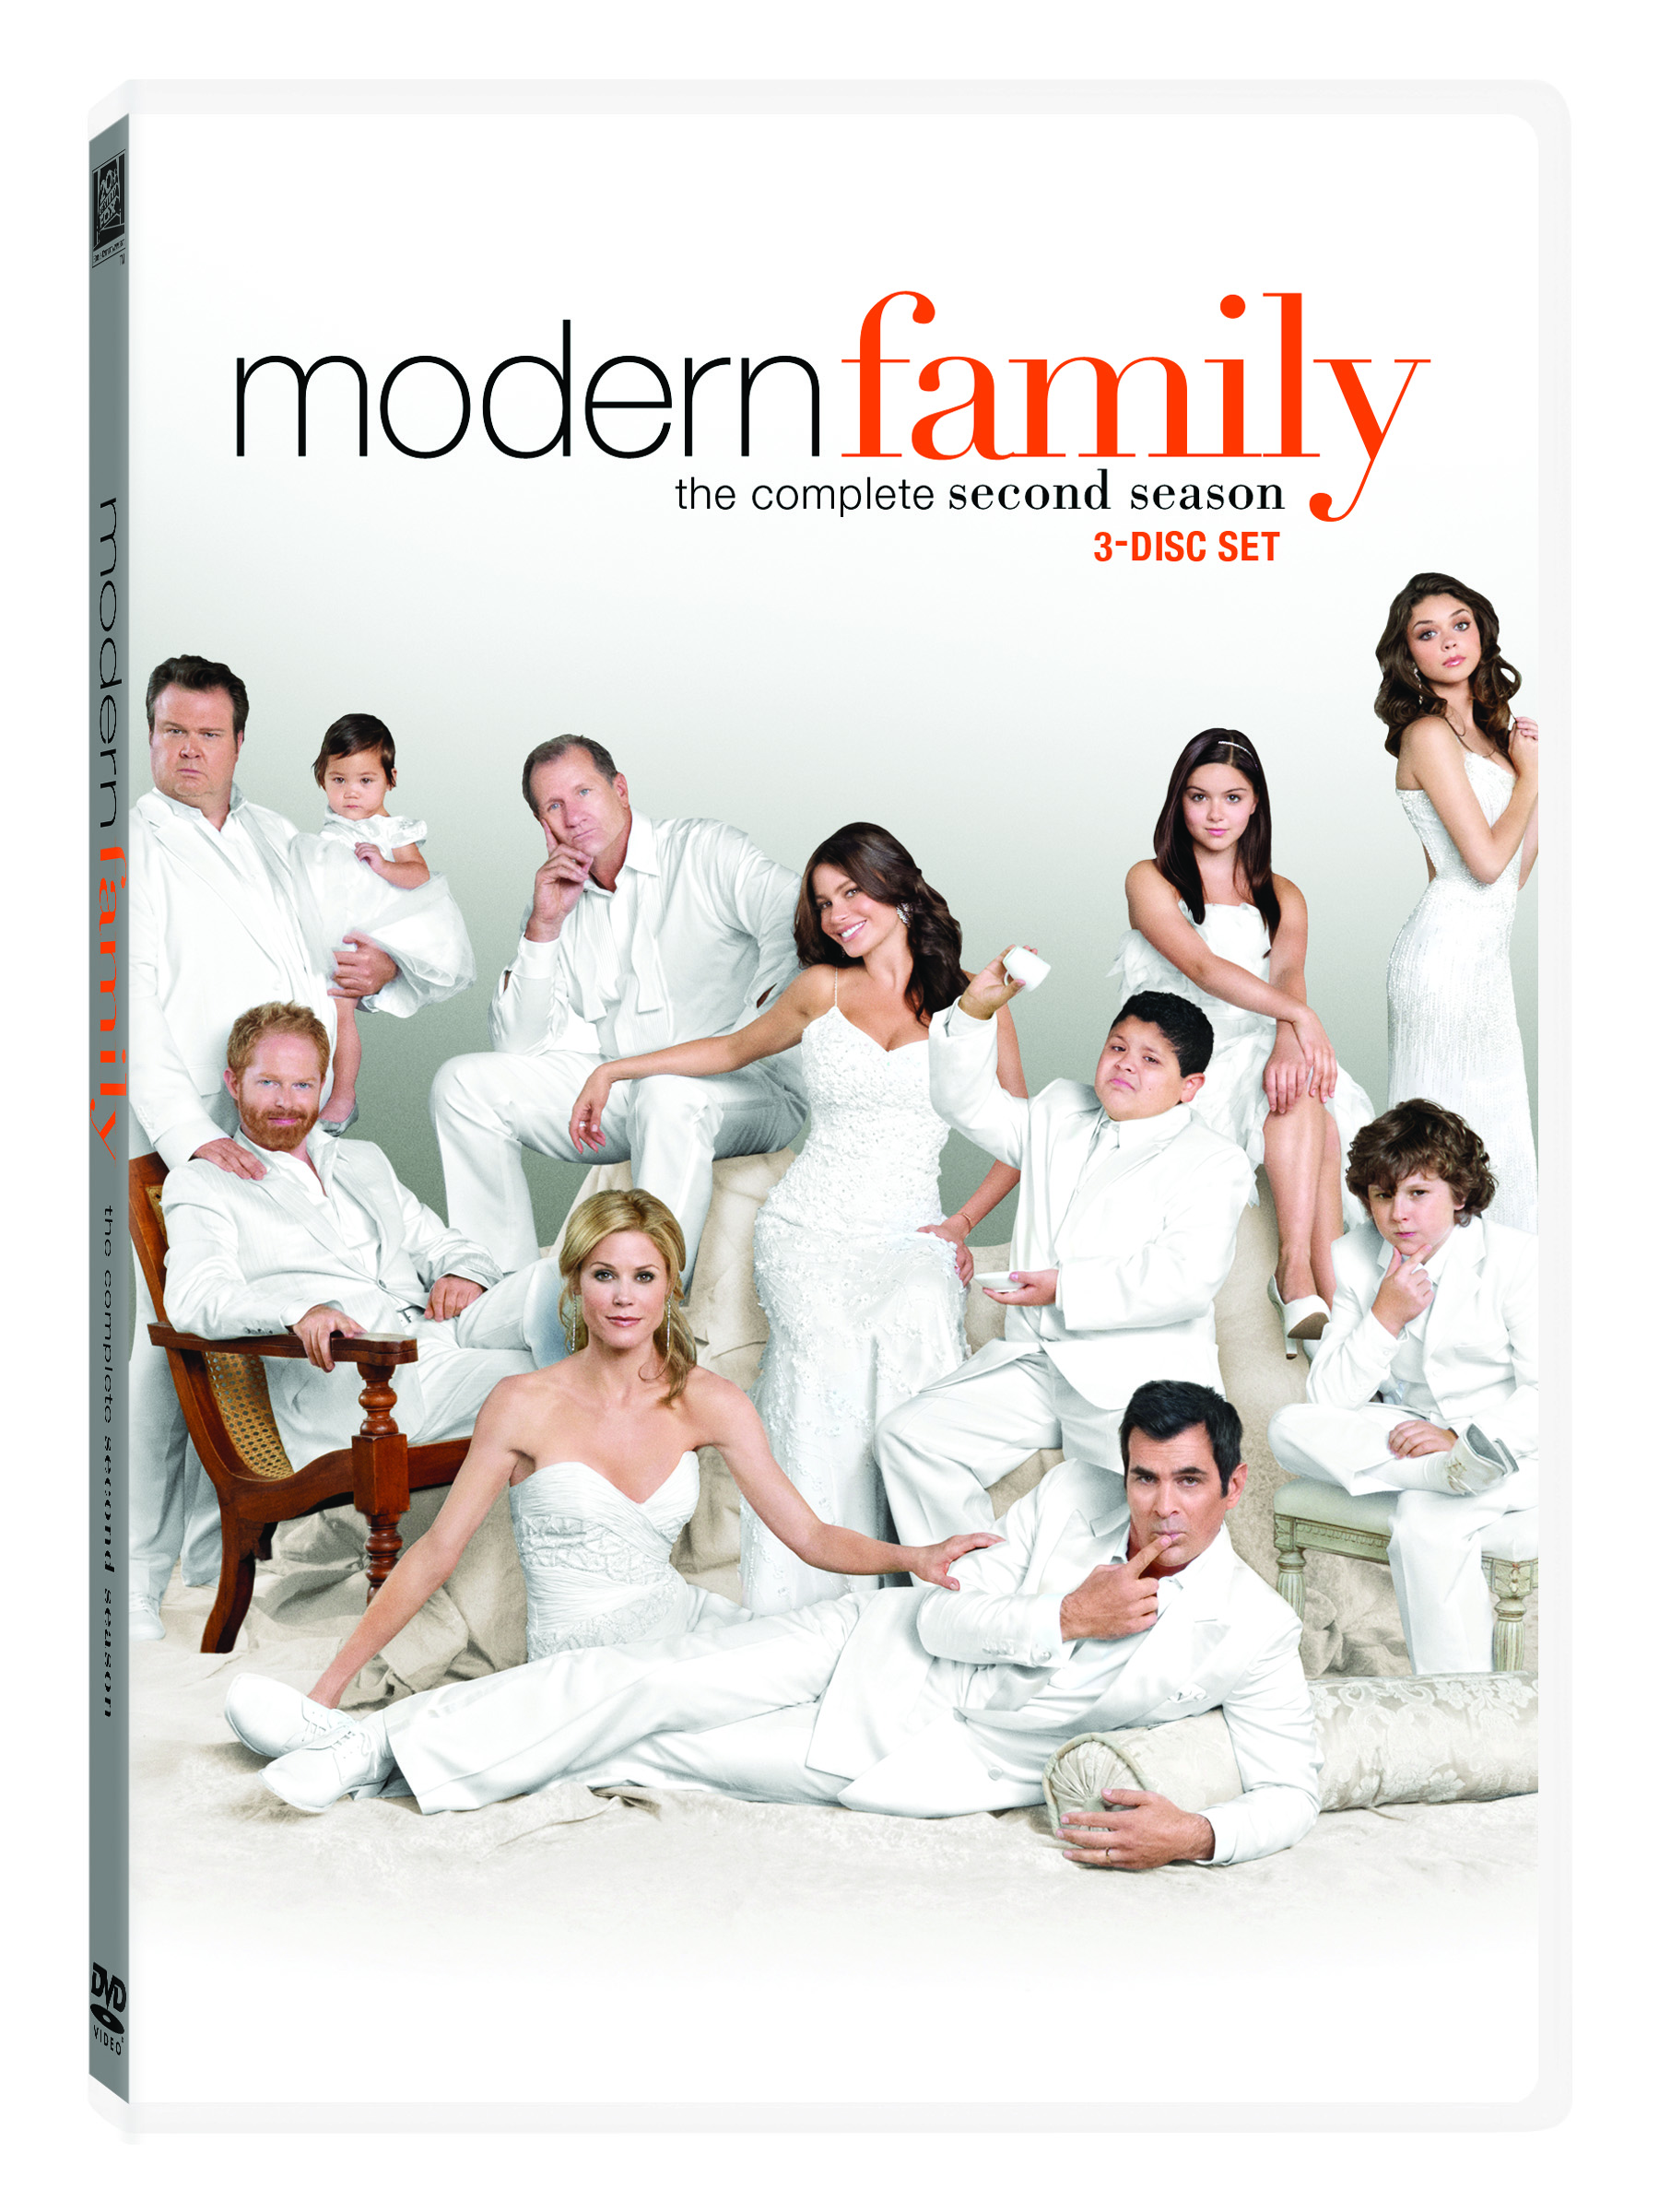 modern family the complete second season on dvd review giveaway